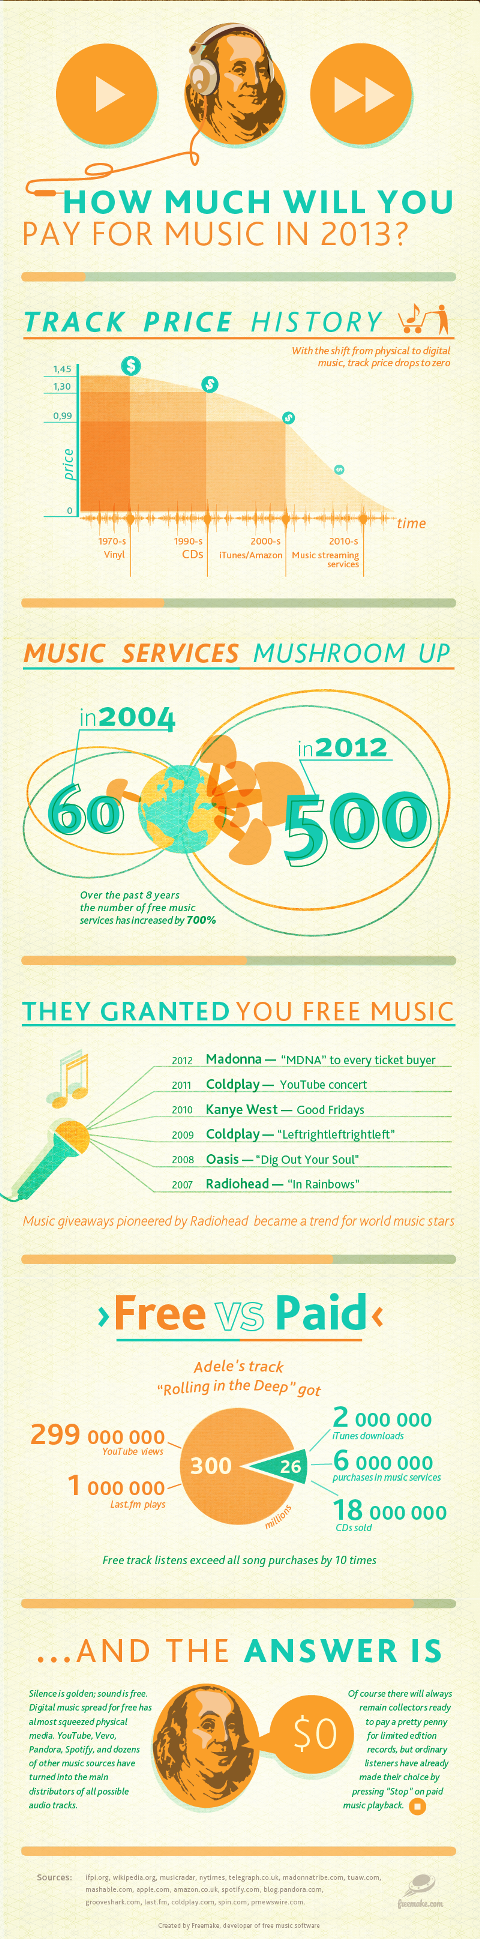 4. How Much Will You Pay for Music in 2013